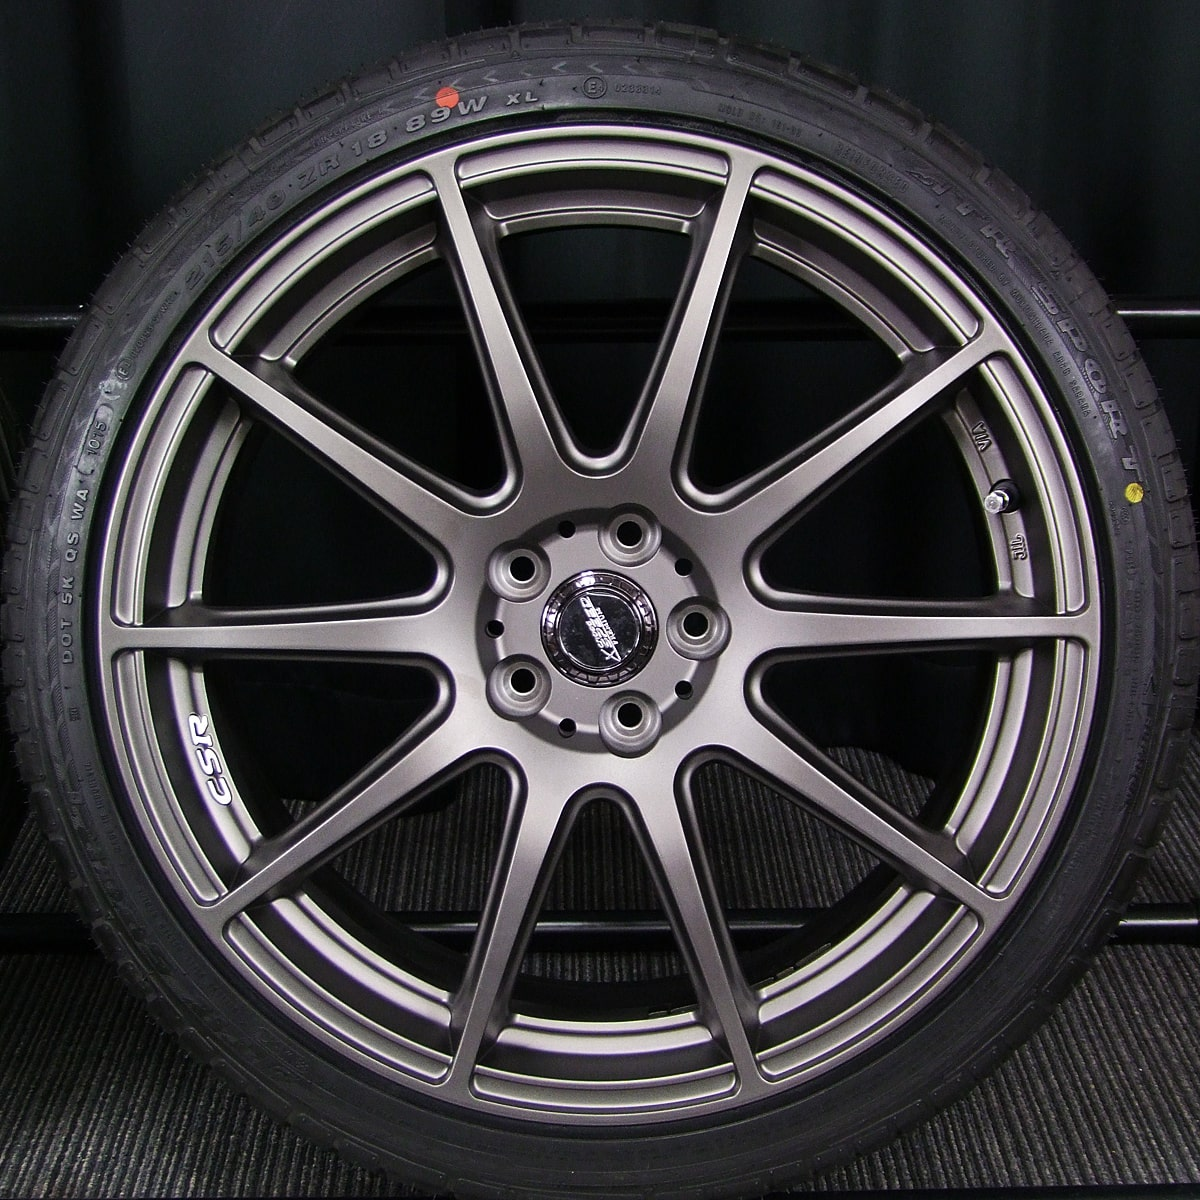 HOT STUFF CROSS SPEED PREMIUM-R マットガンメタ ATR SPORT 215/40ZR18 4本SET